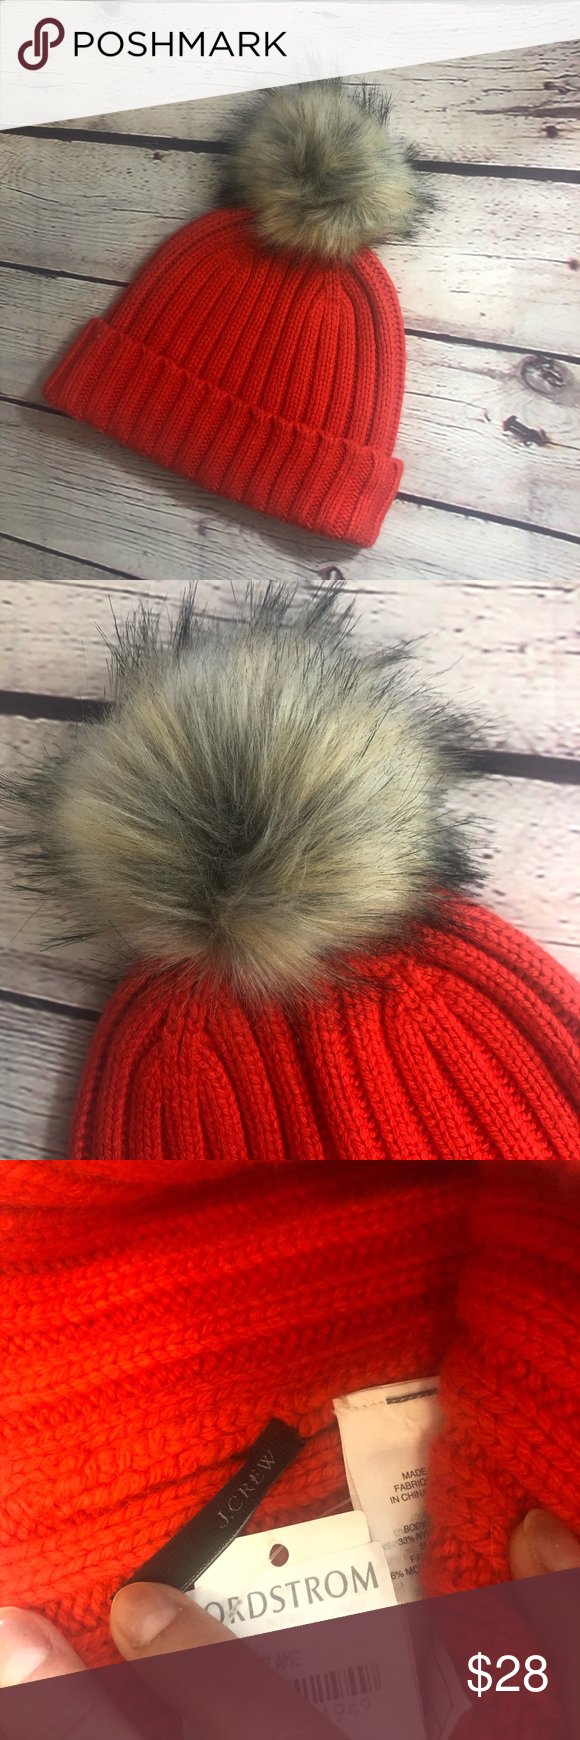 c9c2fc0f063bc J. Crew Ribbed Faux Fur Beanie On our list of stylish yet cozy winter  essentials